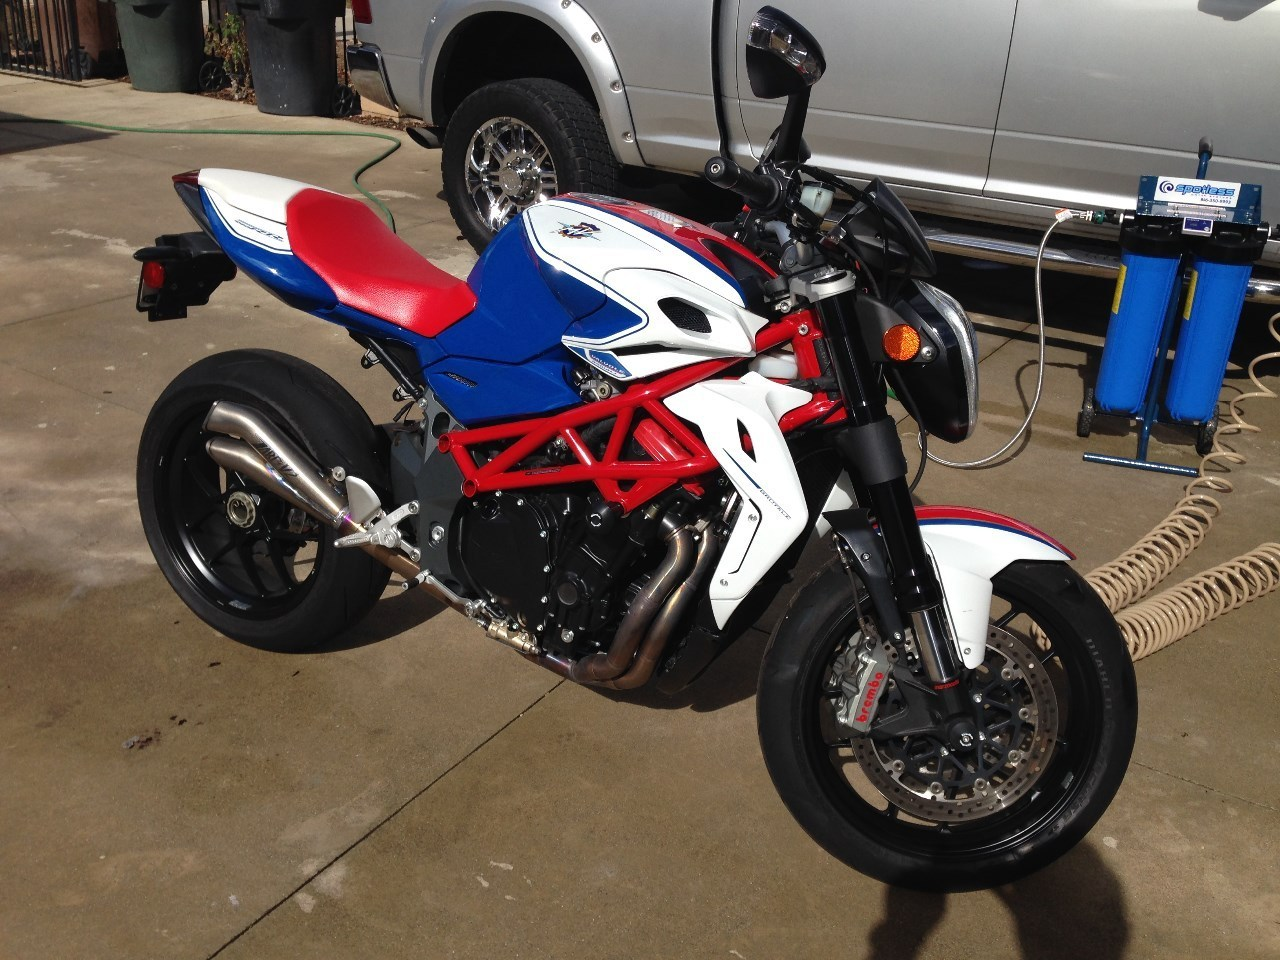 2012 Mv Agusta Brutale 1090RR, motorcycle listing